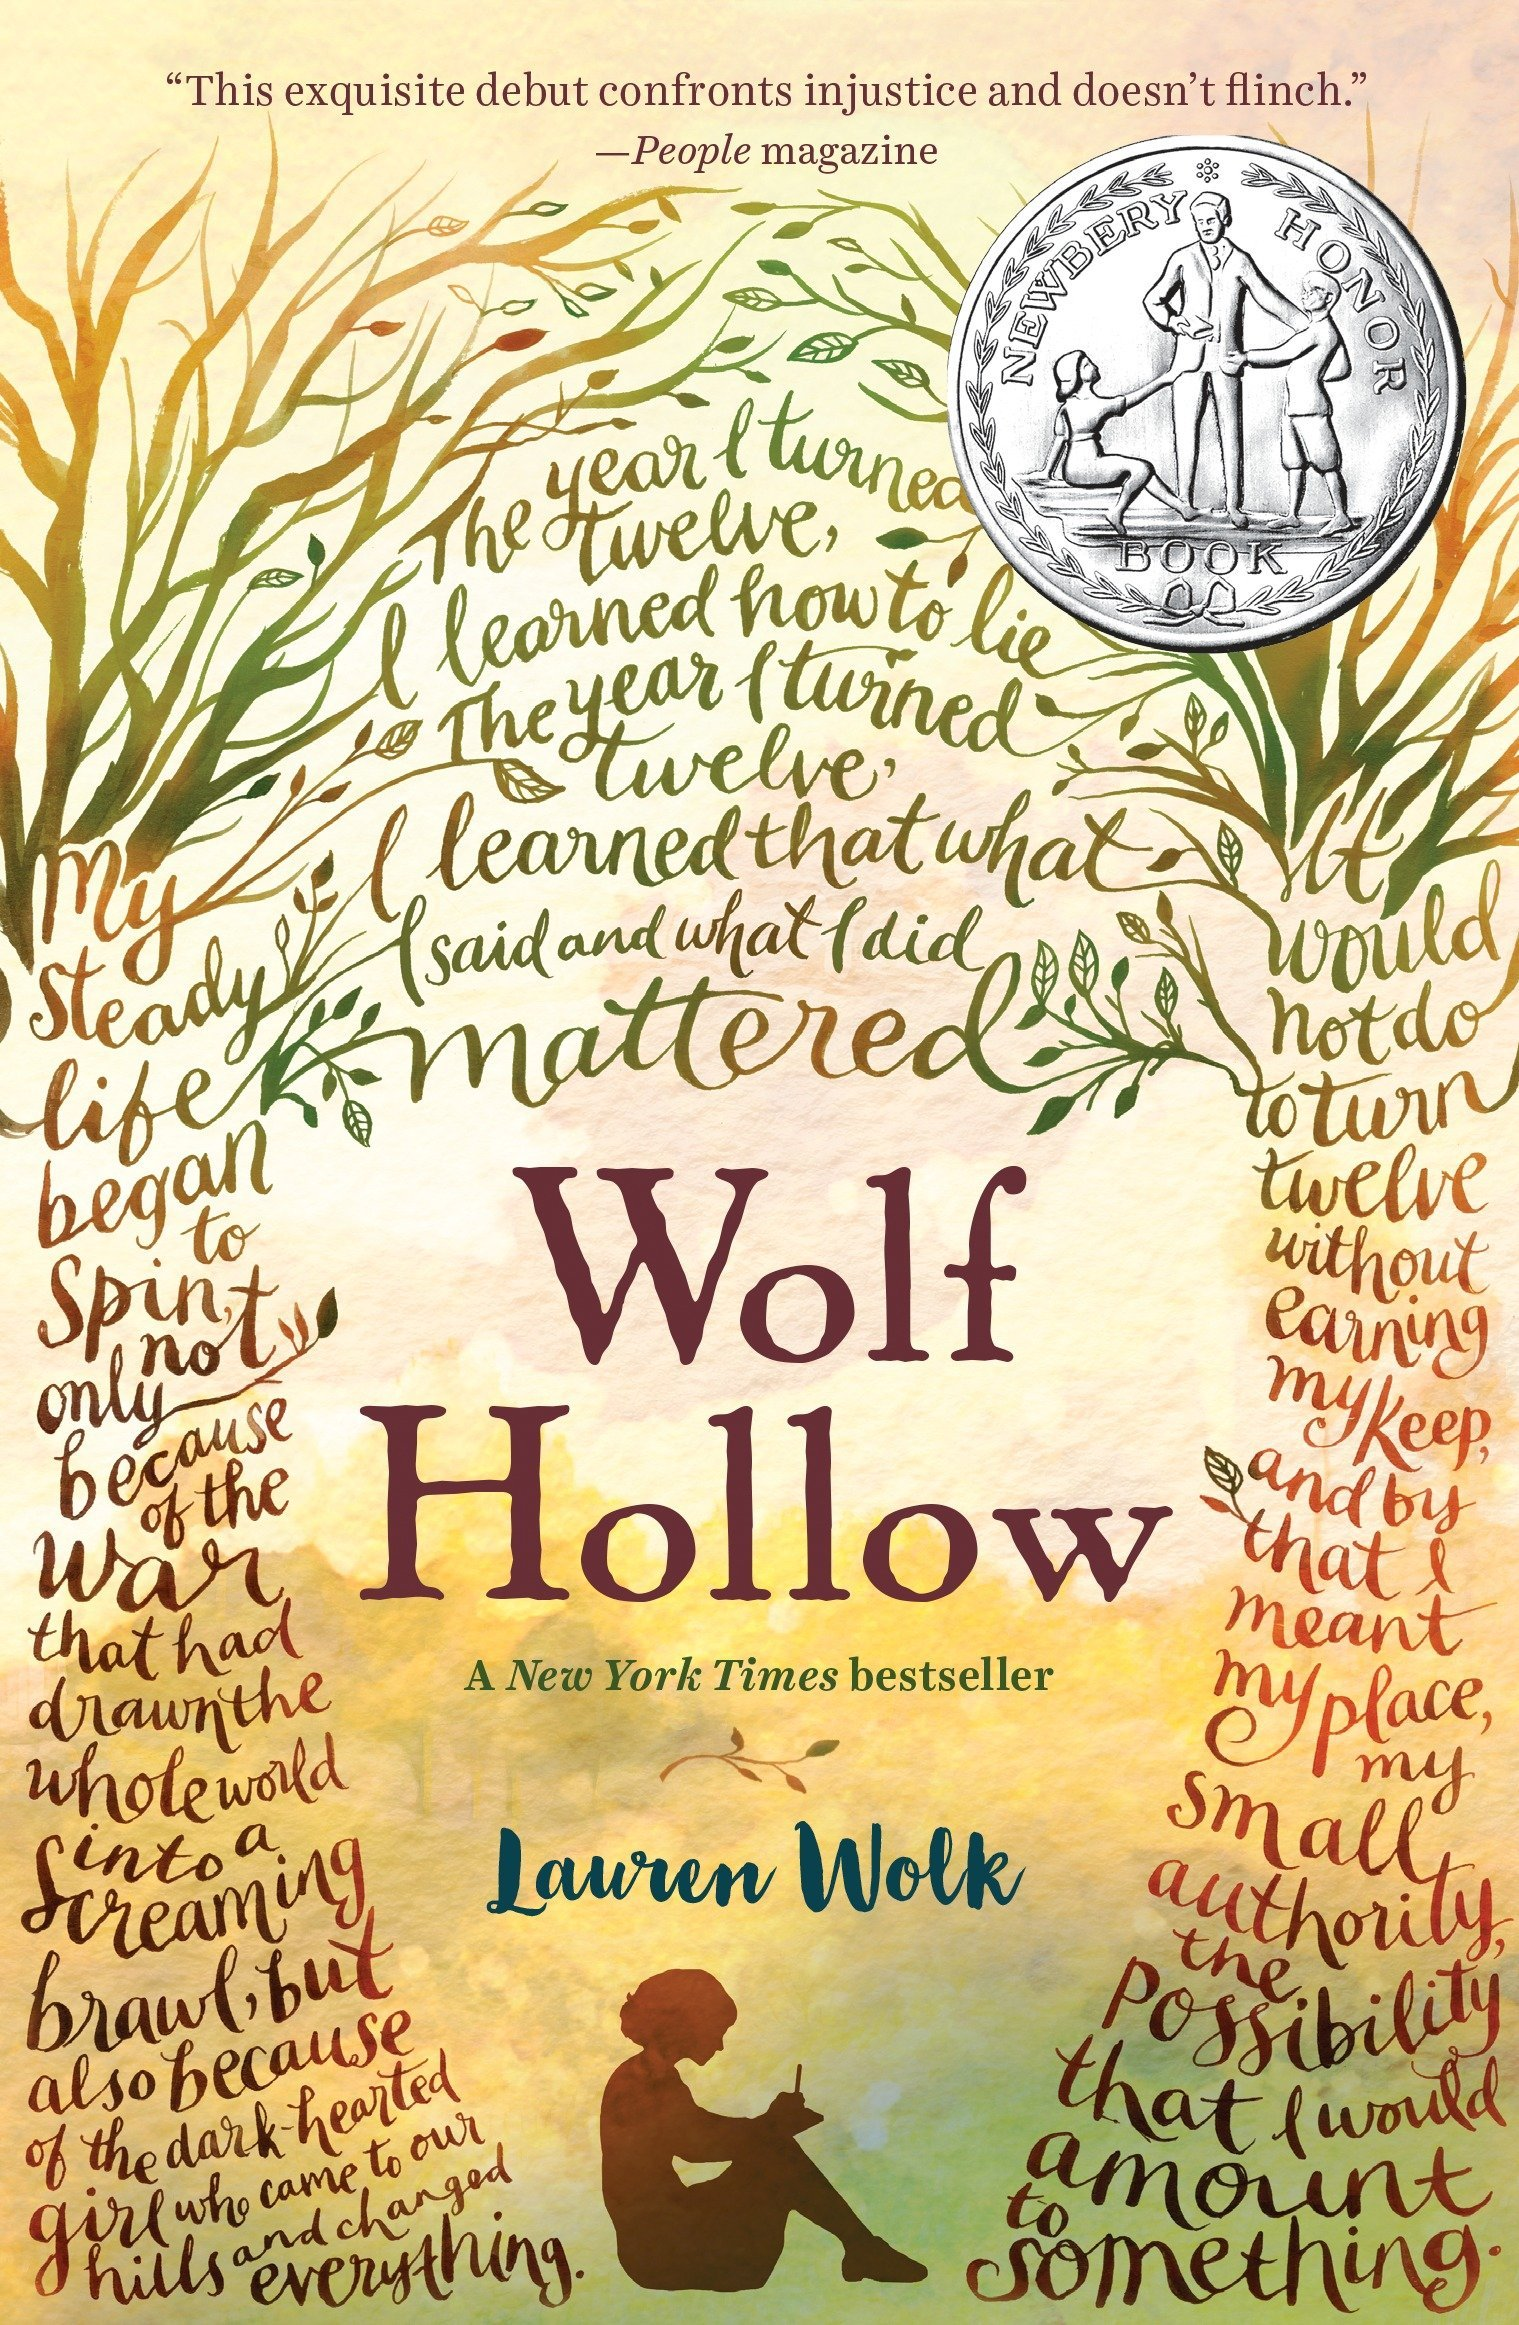 Wolf Hollow: Lauren Wolk: 9781101994849: Amazon.com: Books